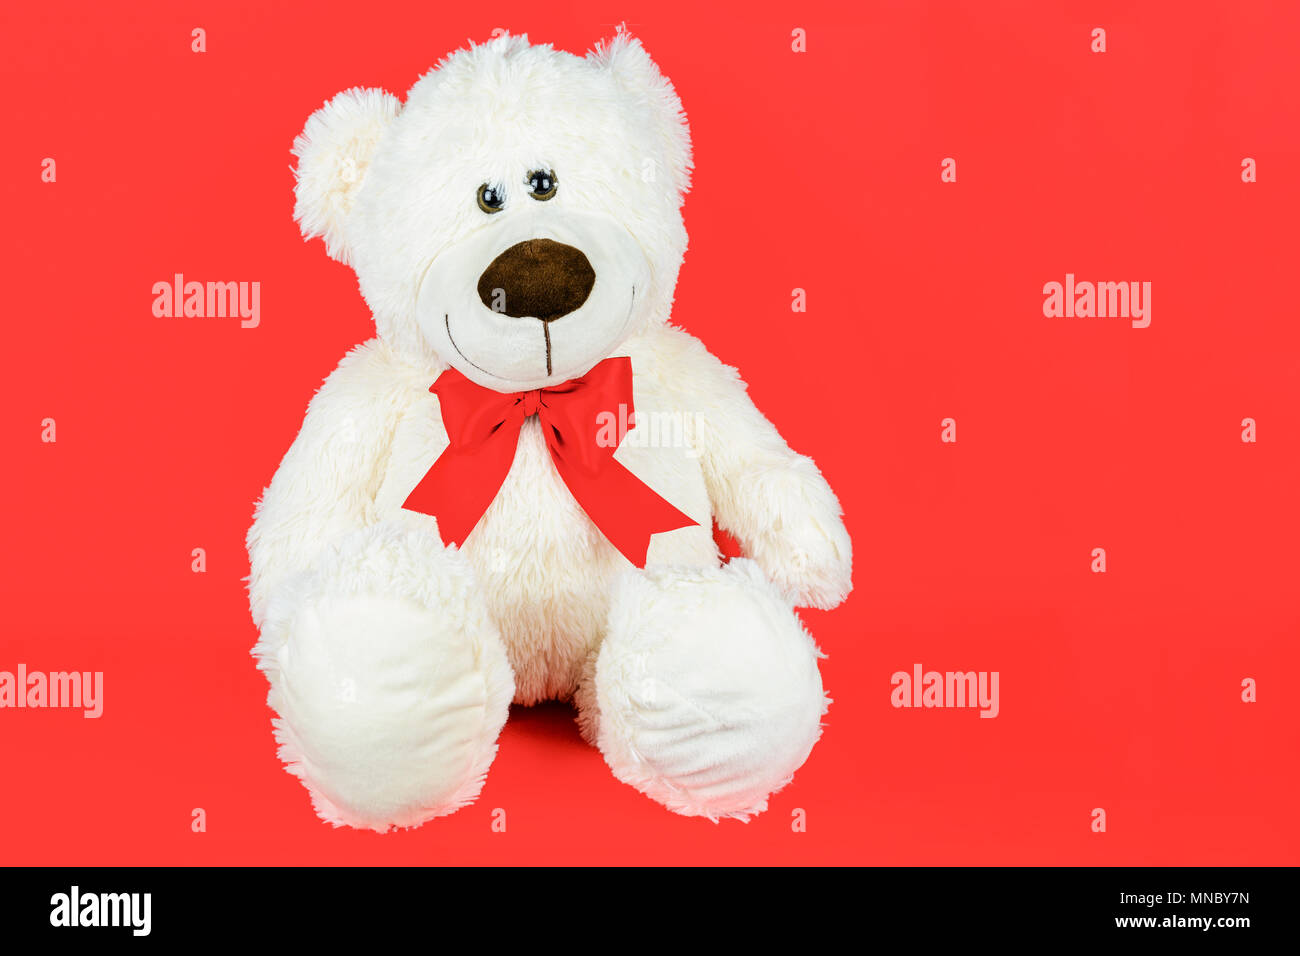 Greetings card concept - white teddy bear with a bow isolated on a red background (copy space) - Stock Image